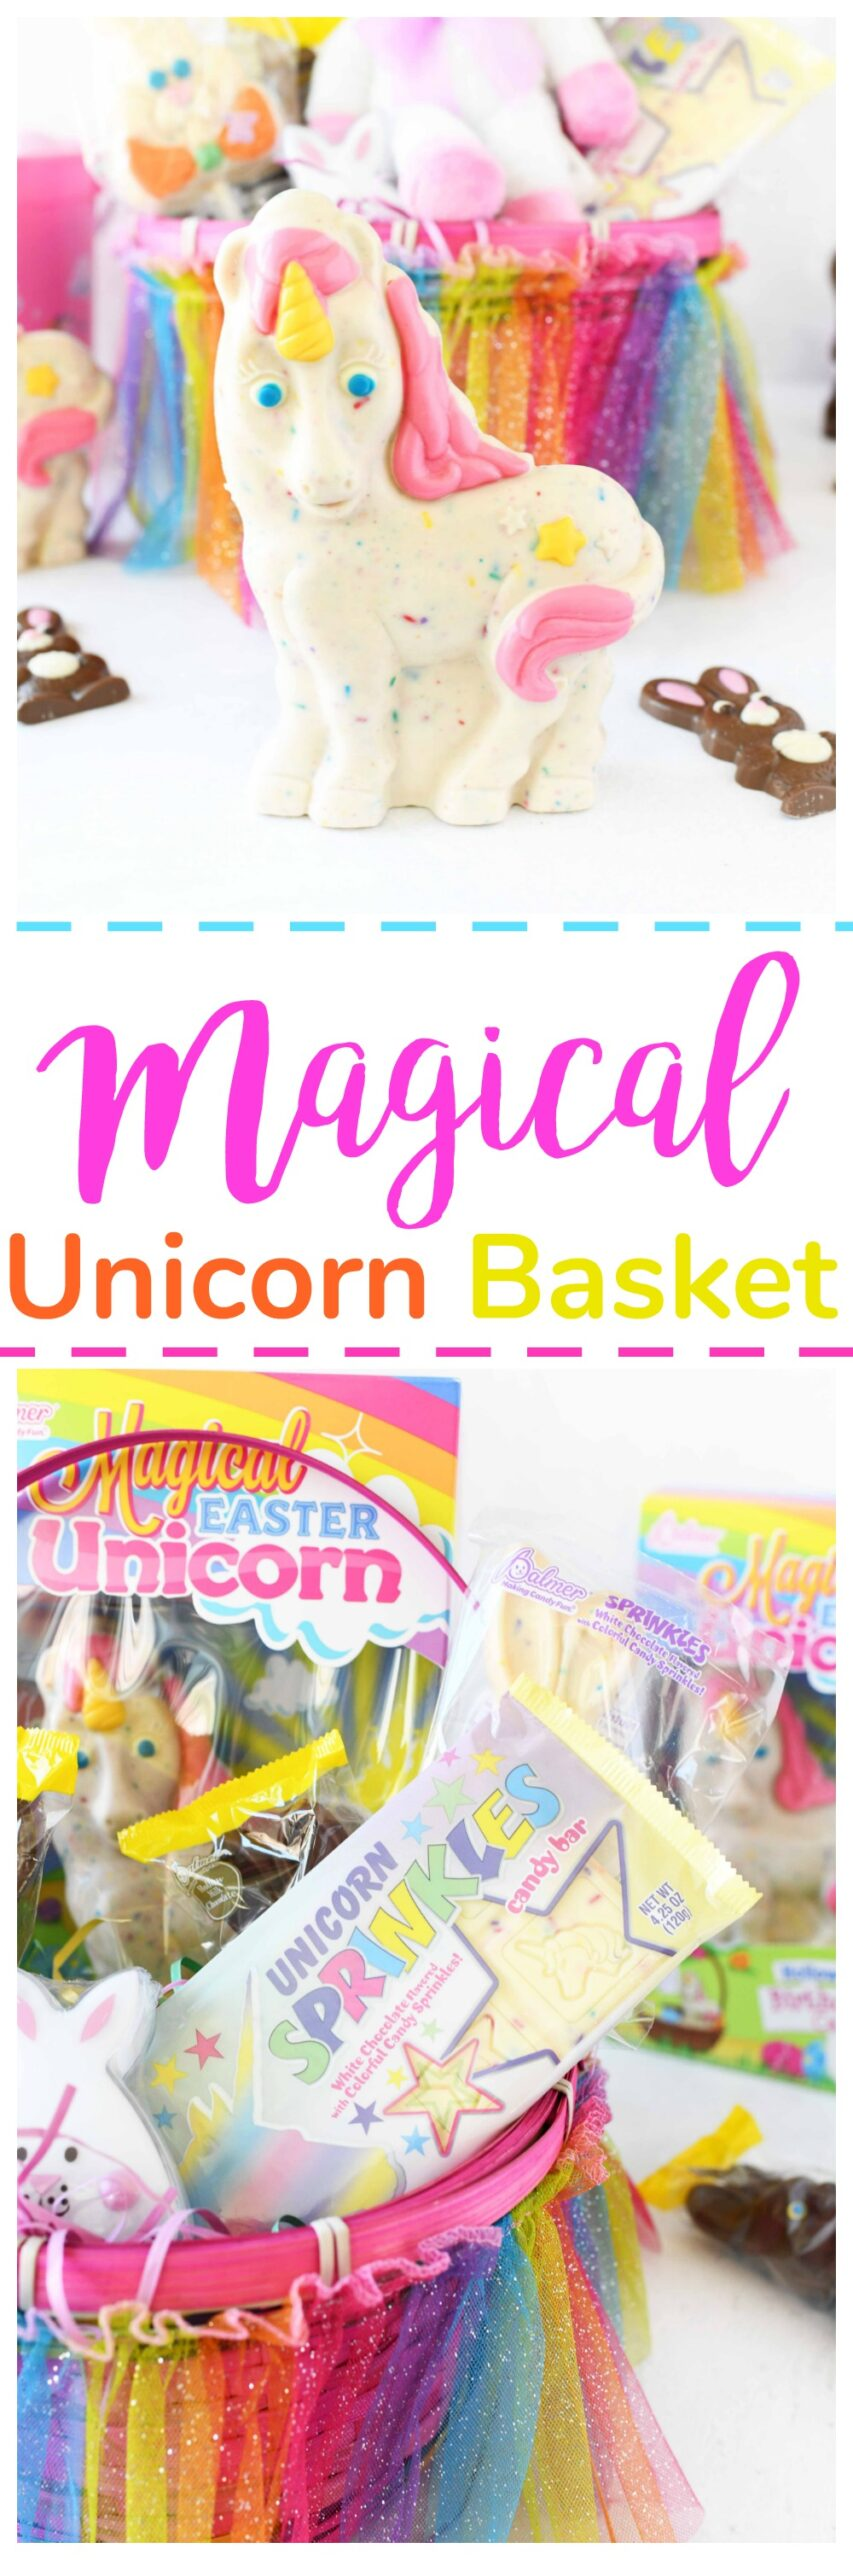 Unicorn Easter Basket Idea (Inexpensive and Easy)